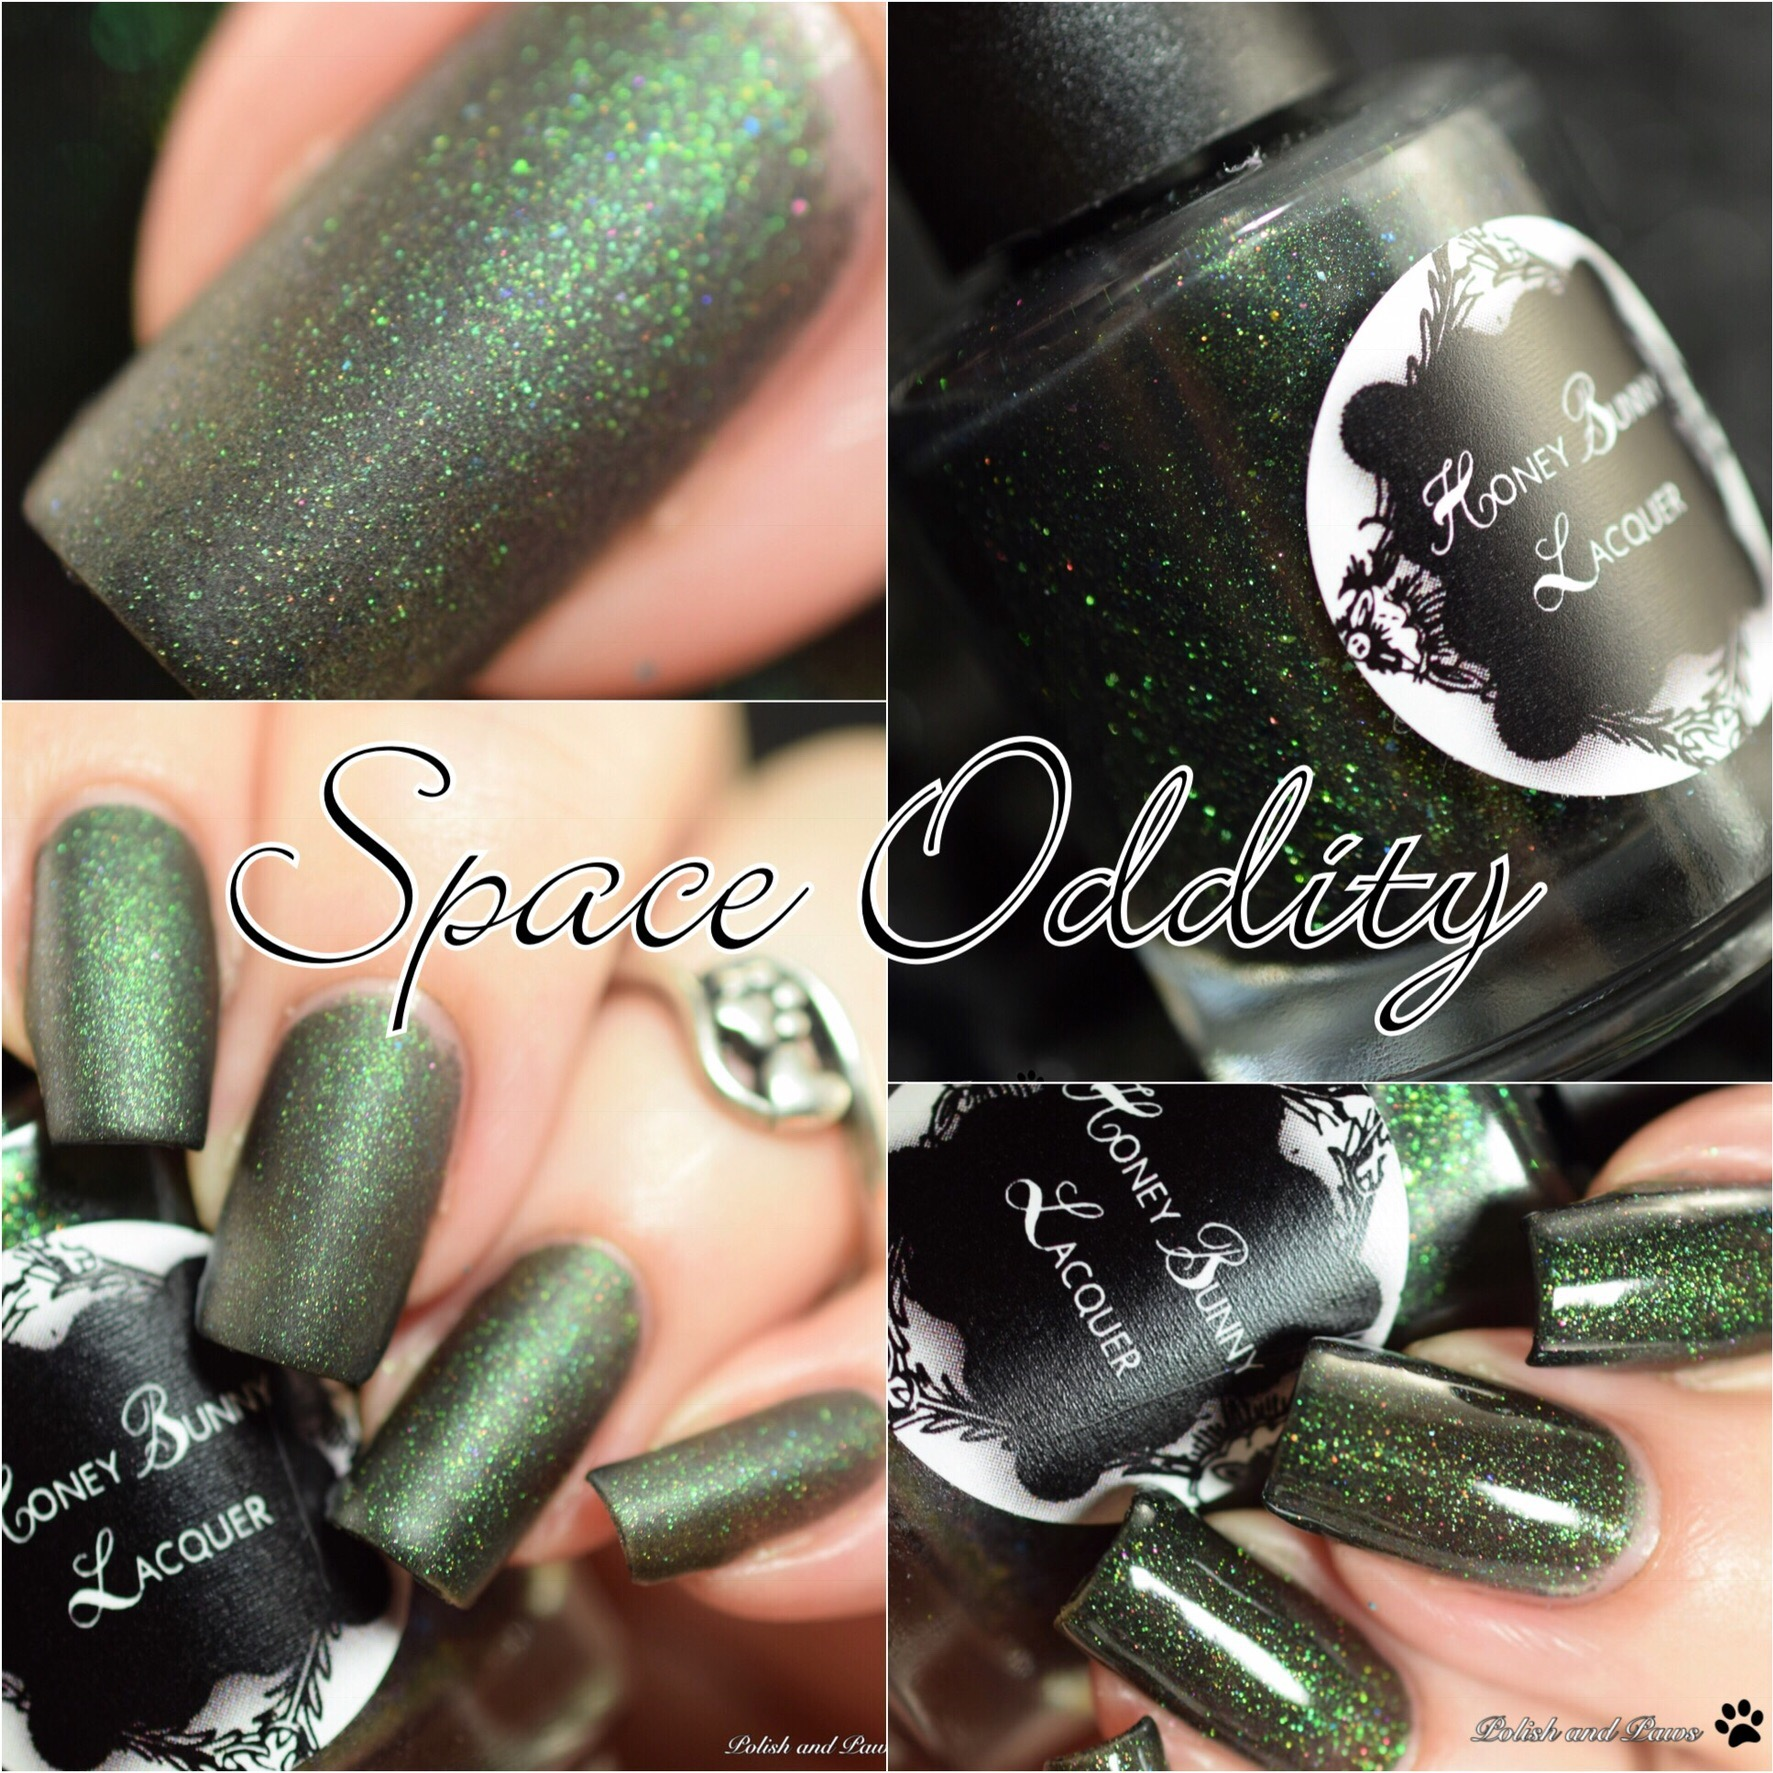 Honey Bunny Lacquer Space Oddity